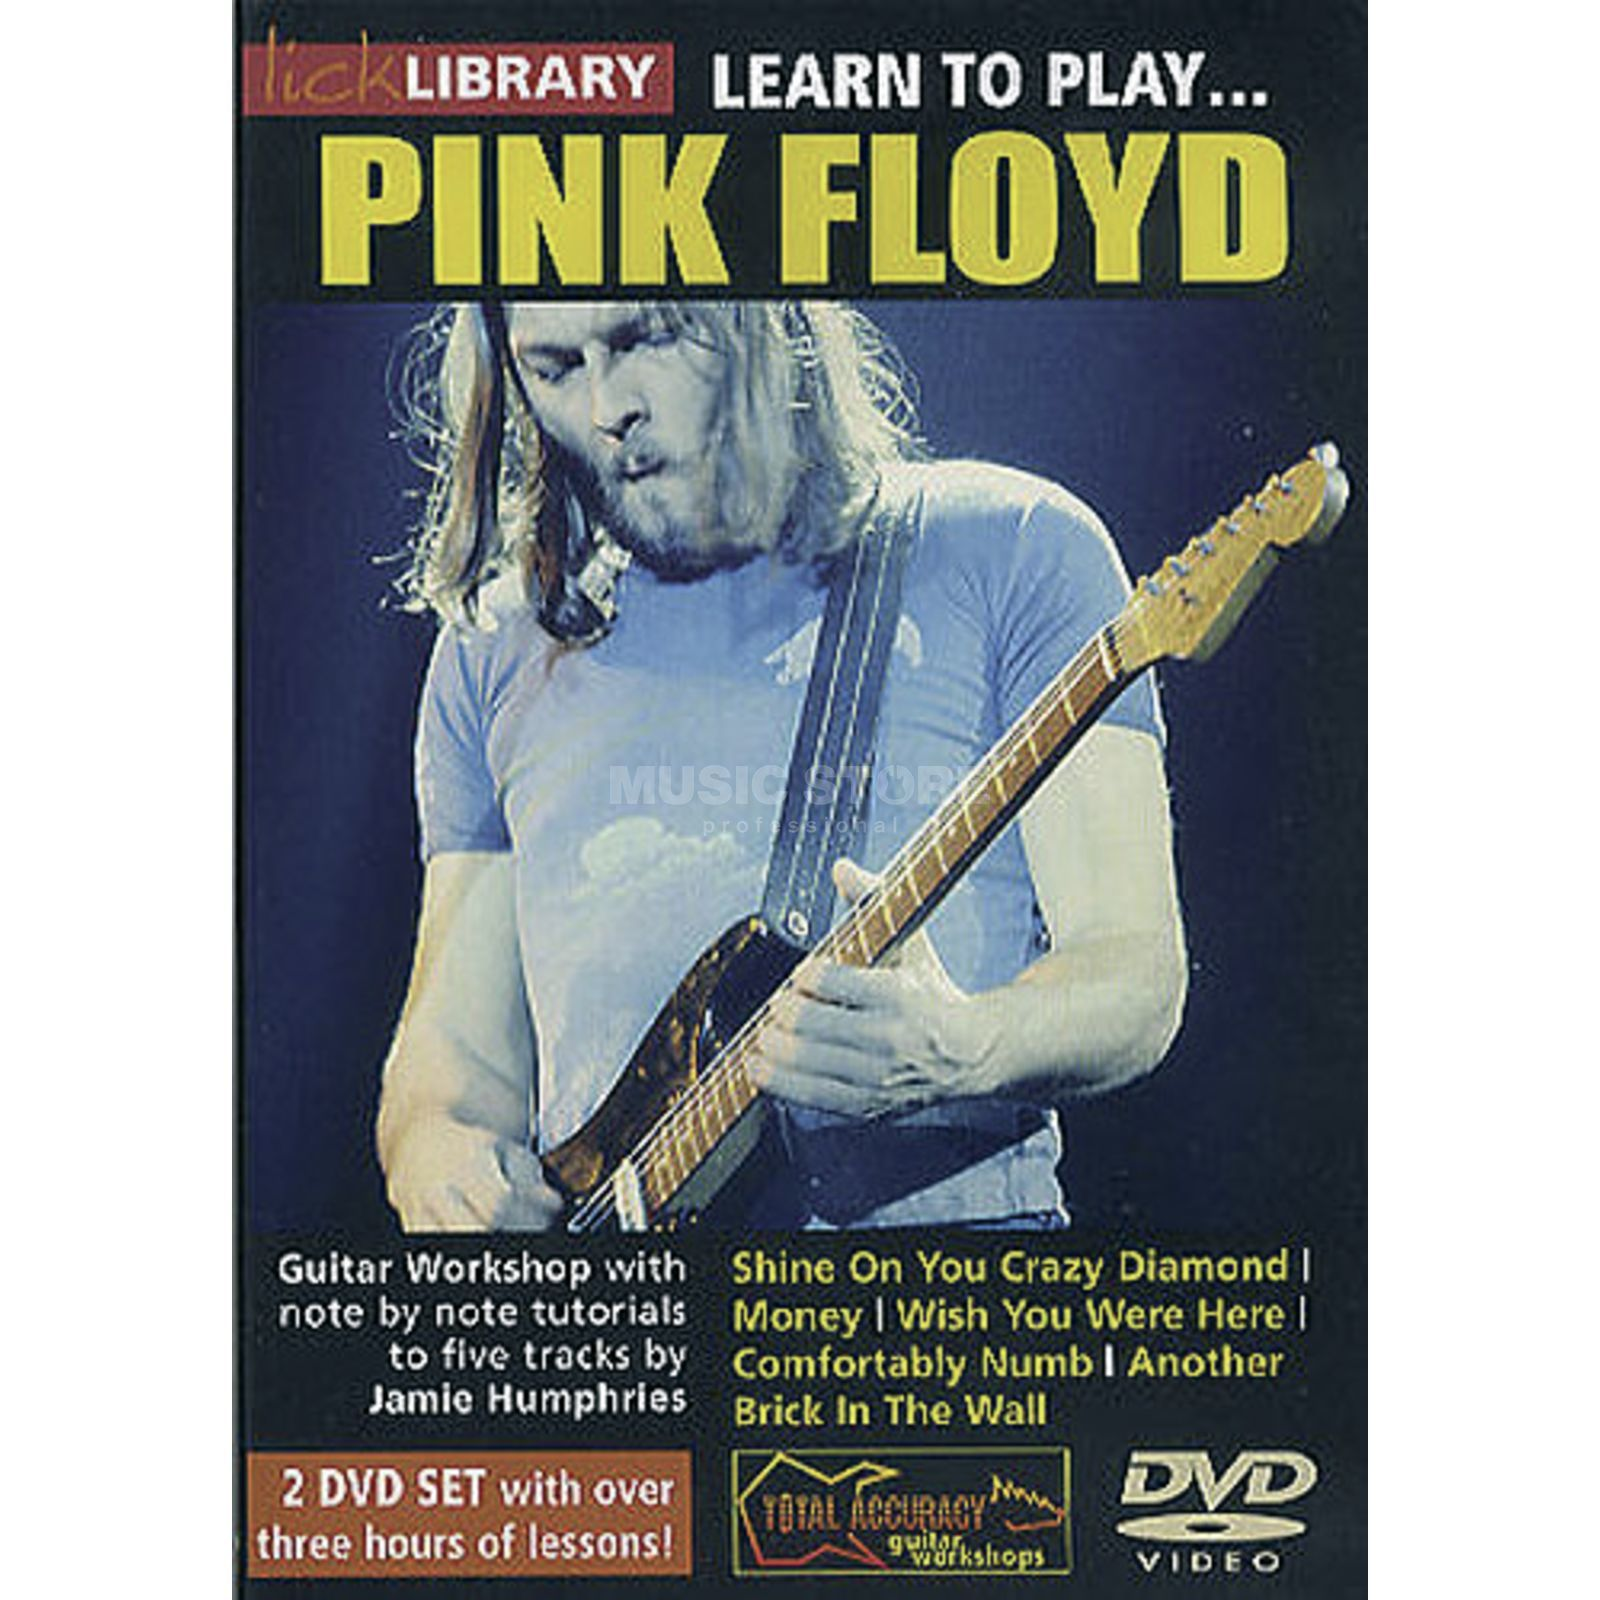 Roadrock International Lick library - Pink Floyd Learn to play (Guitar), DVD Produktbillede